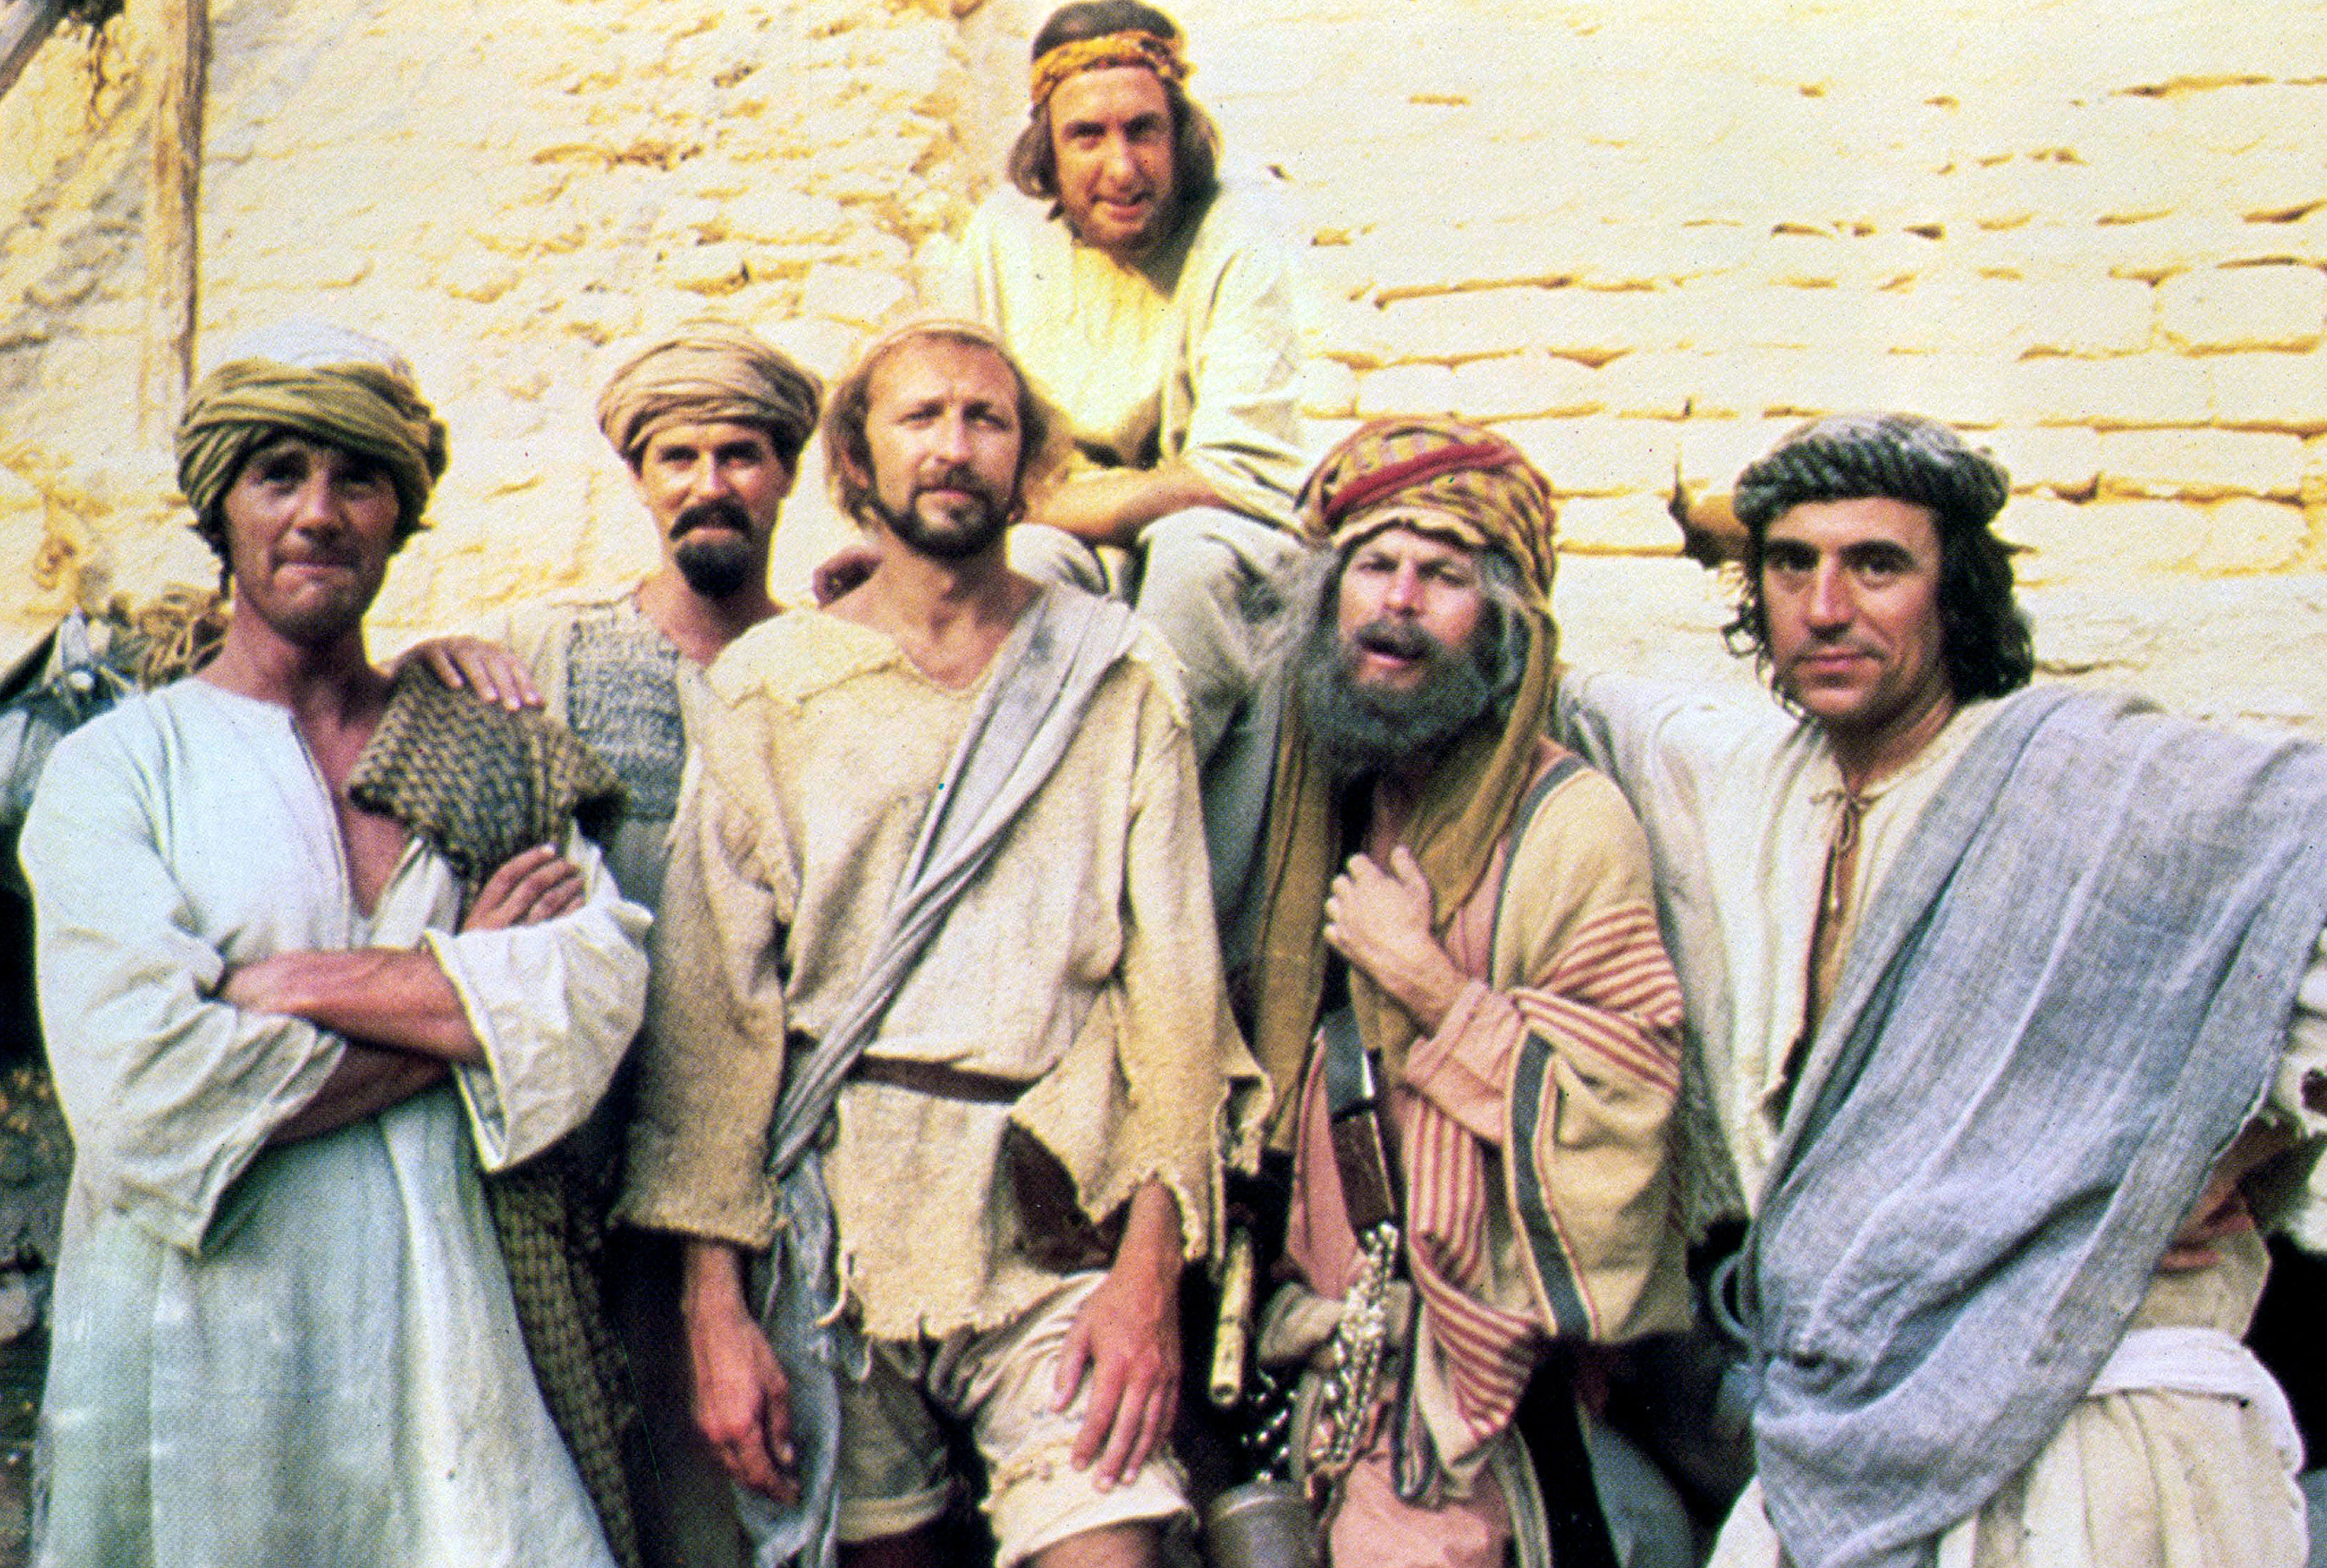 Monty Python changed the tone of British comedy